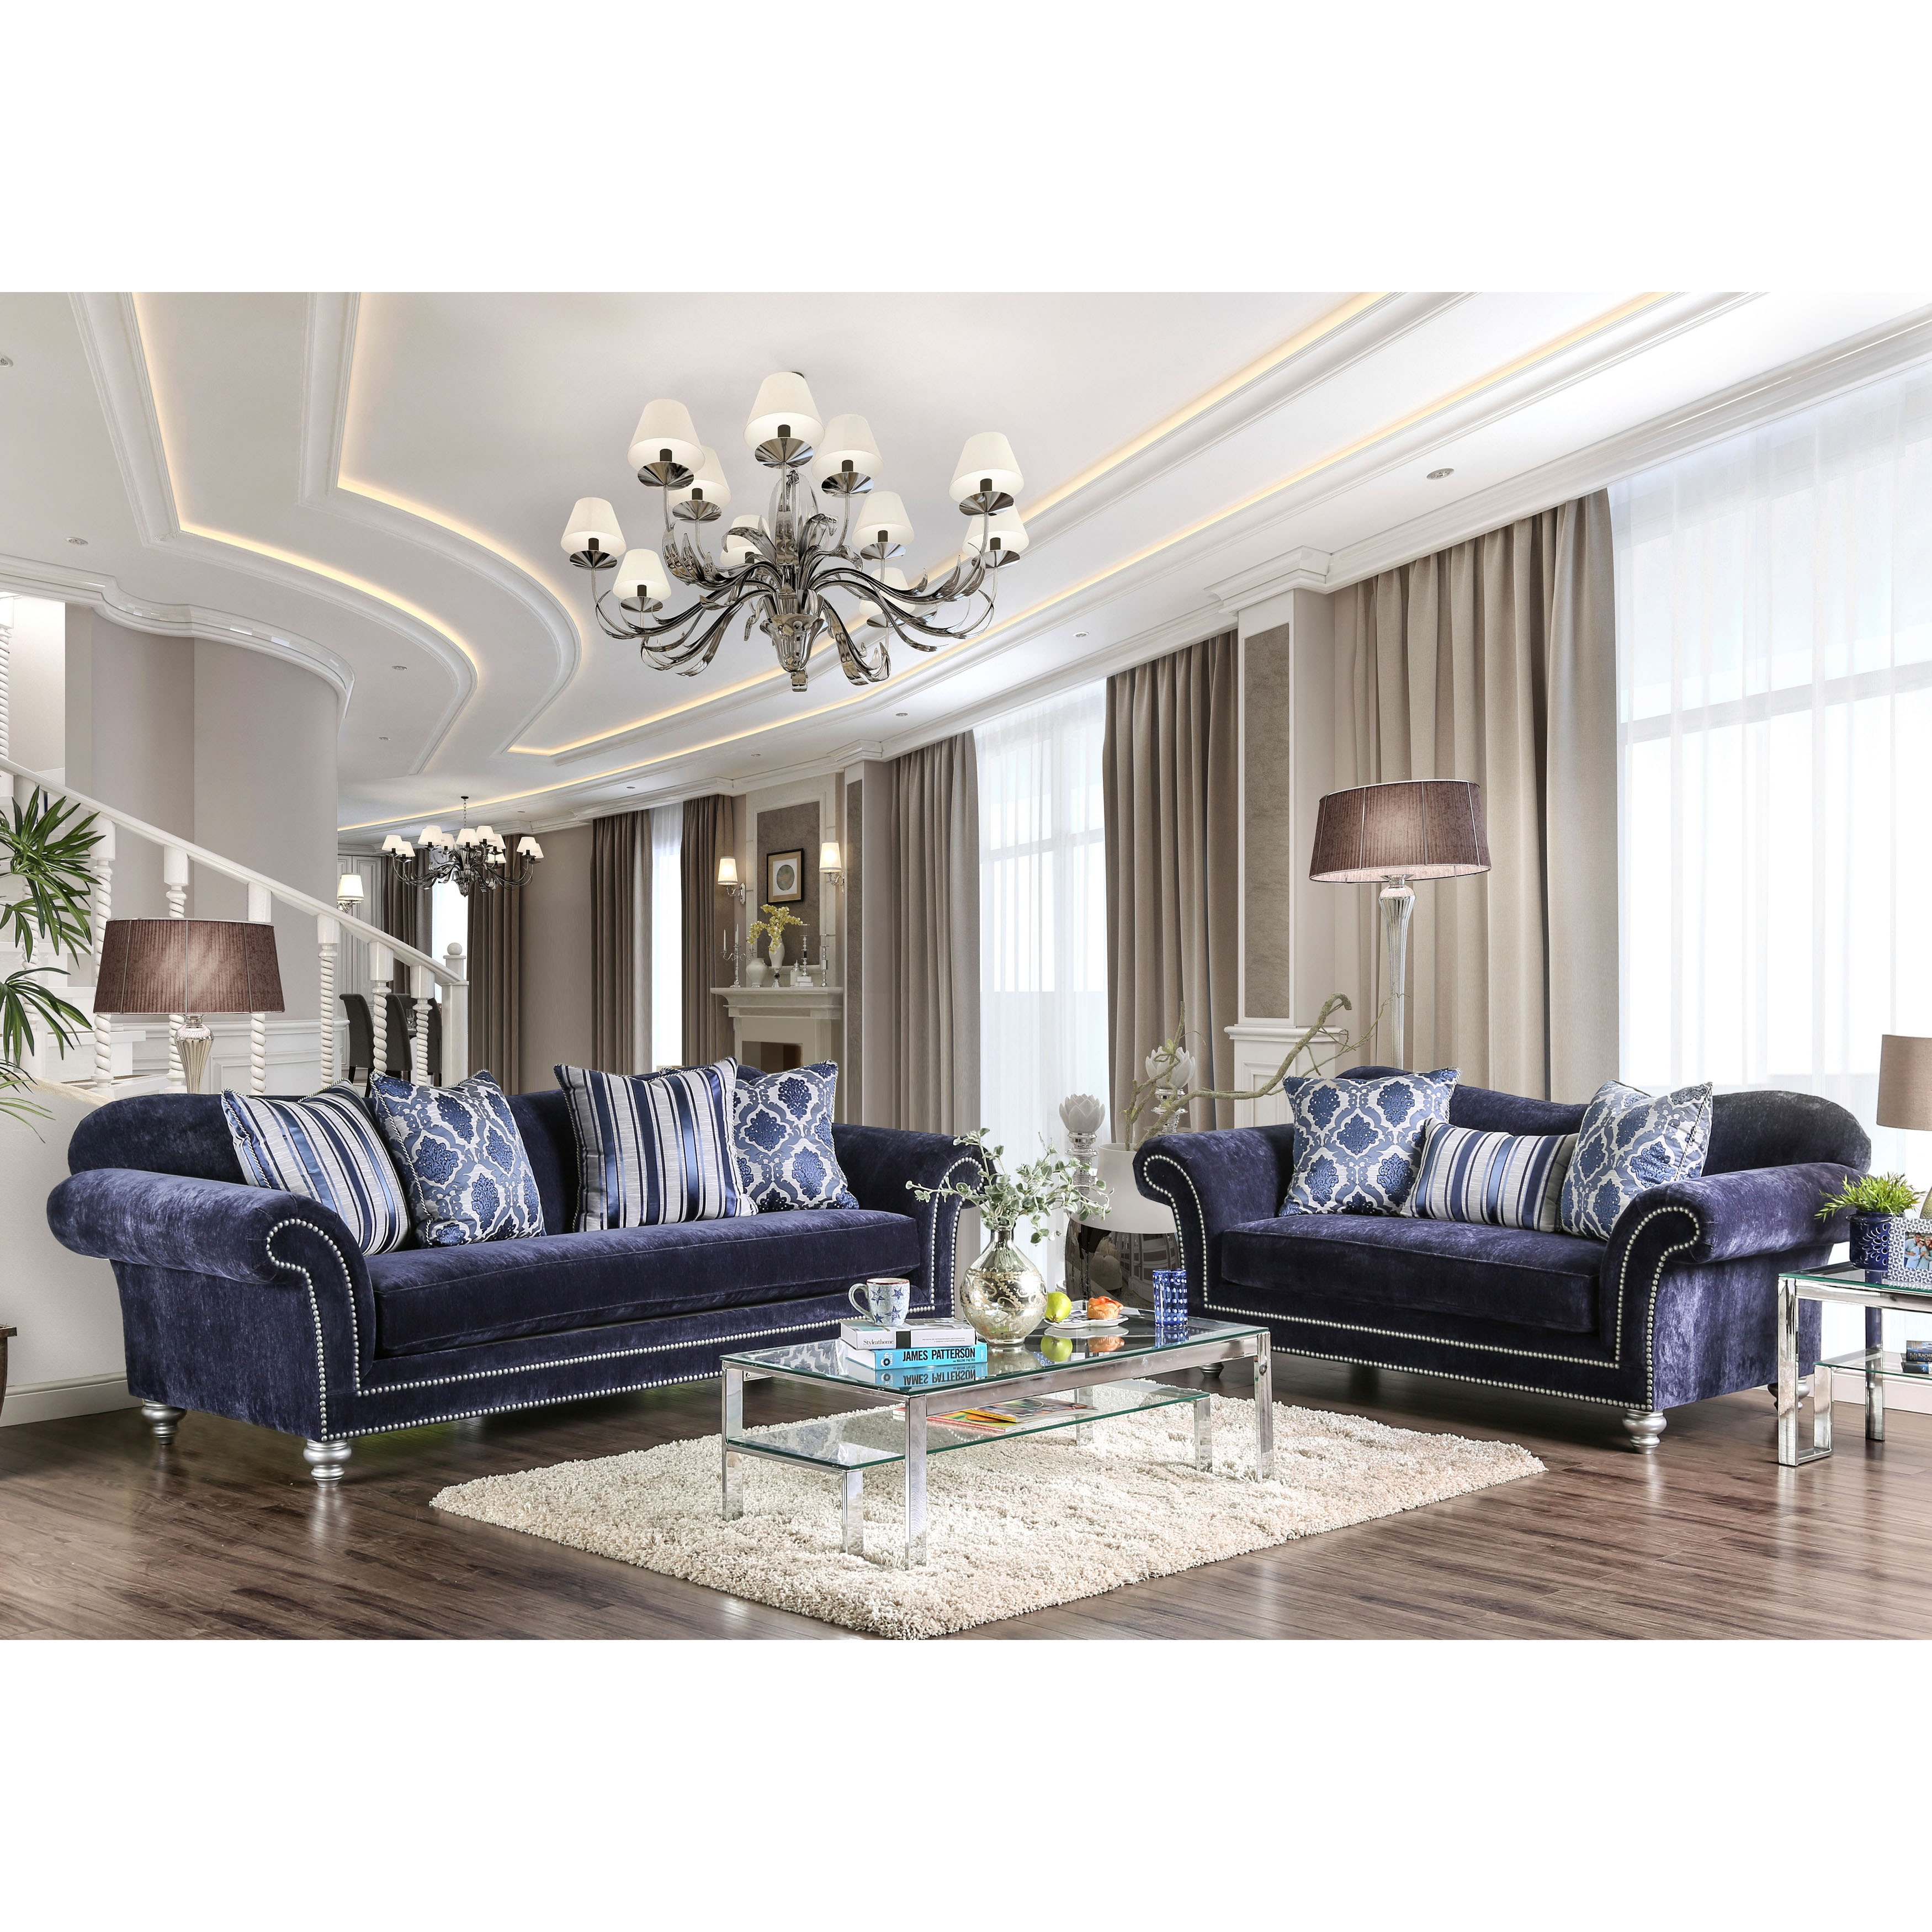 Alema Glam Navy Microfiber Sofa By Furniture Of America   Free Shipping  Today   Overstock   20820744